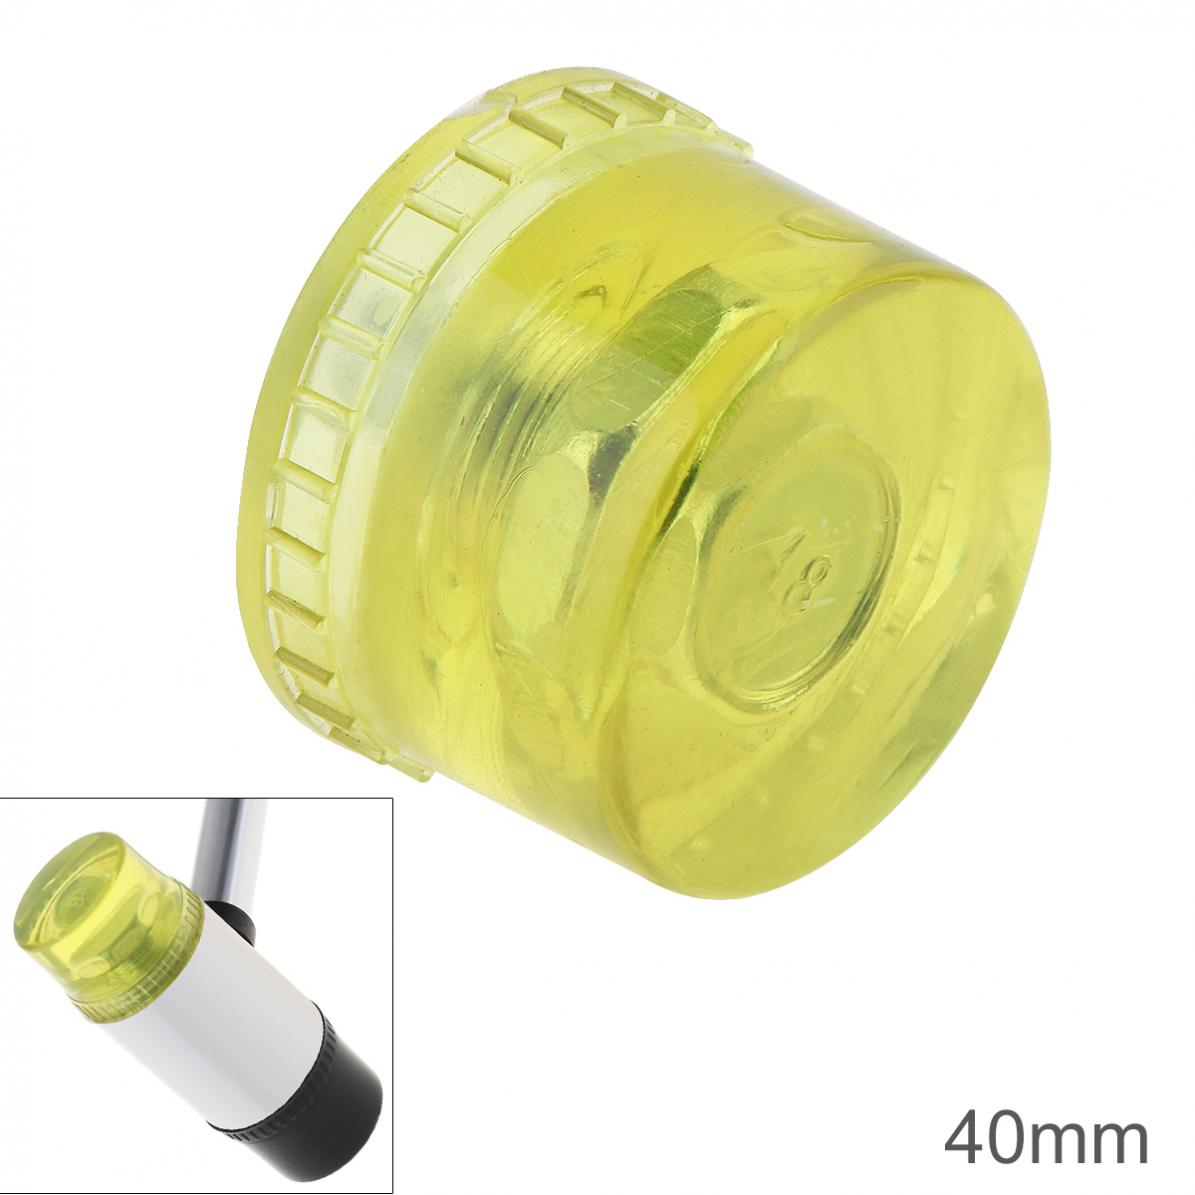 40mm Rubber Hammer Head Double Faced Work Glazing Window Beads Hammer with Replaceable Hammer Head Nylon Head Mallet Tool